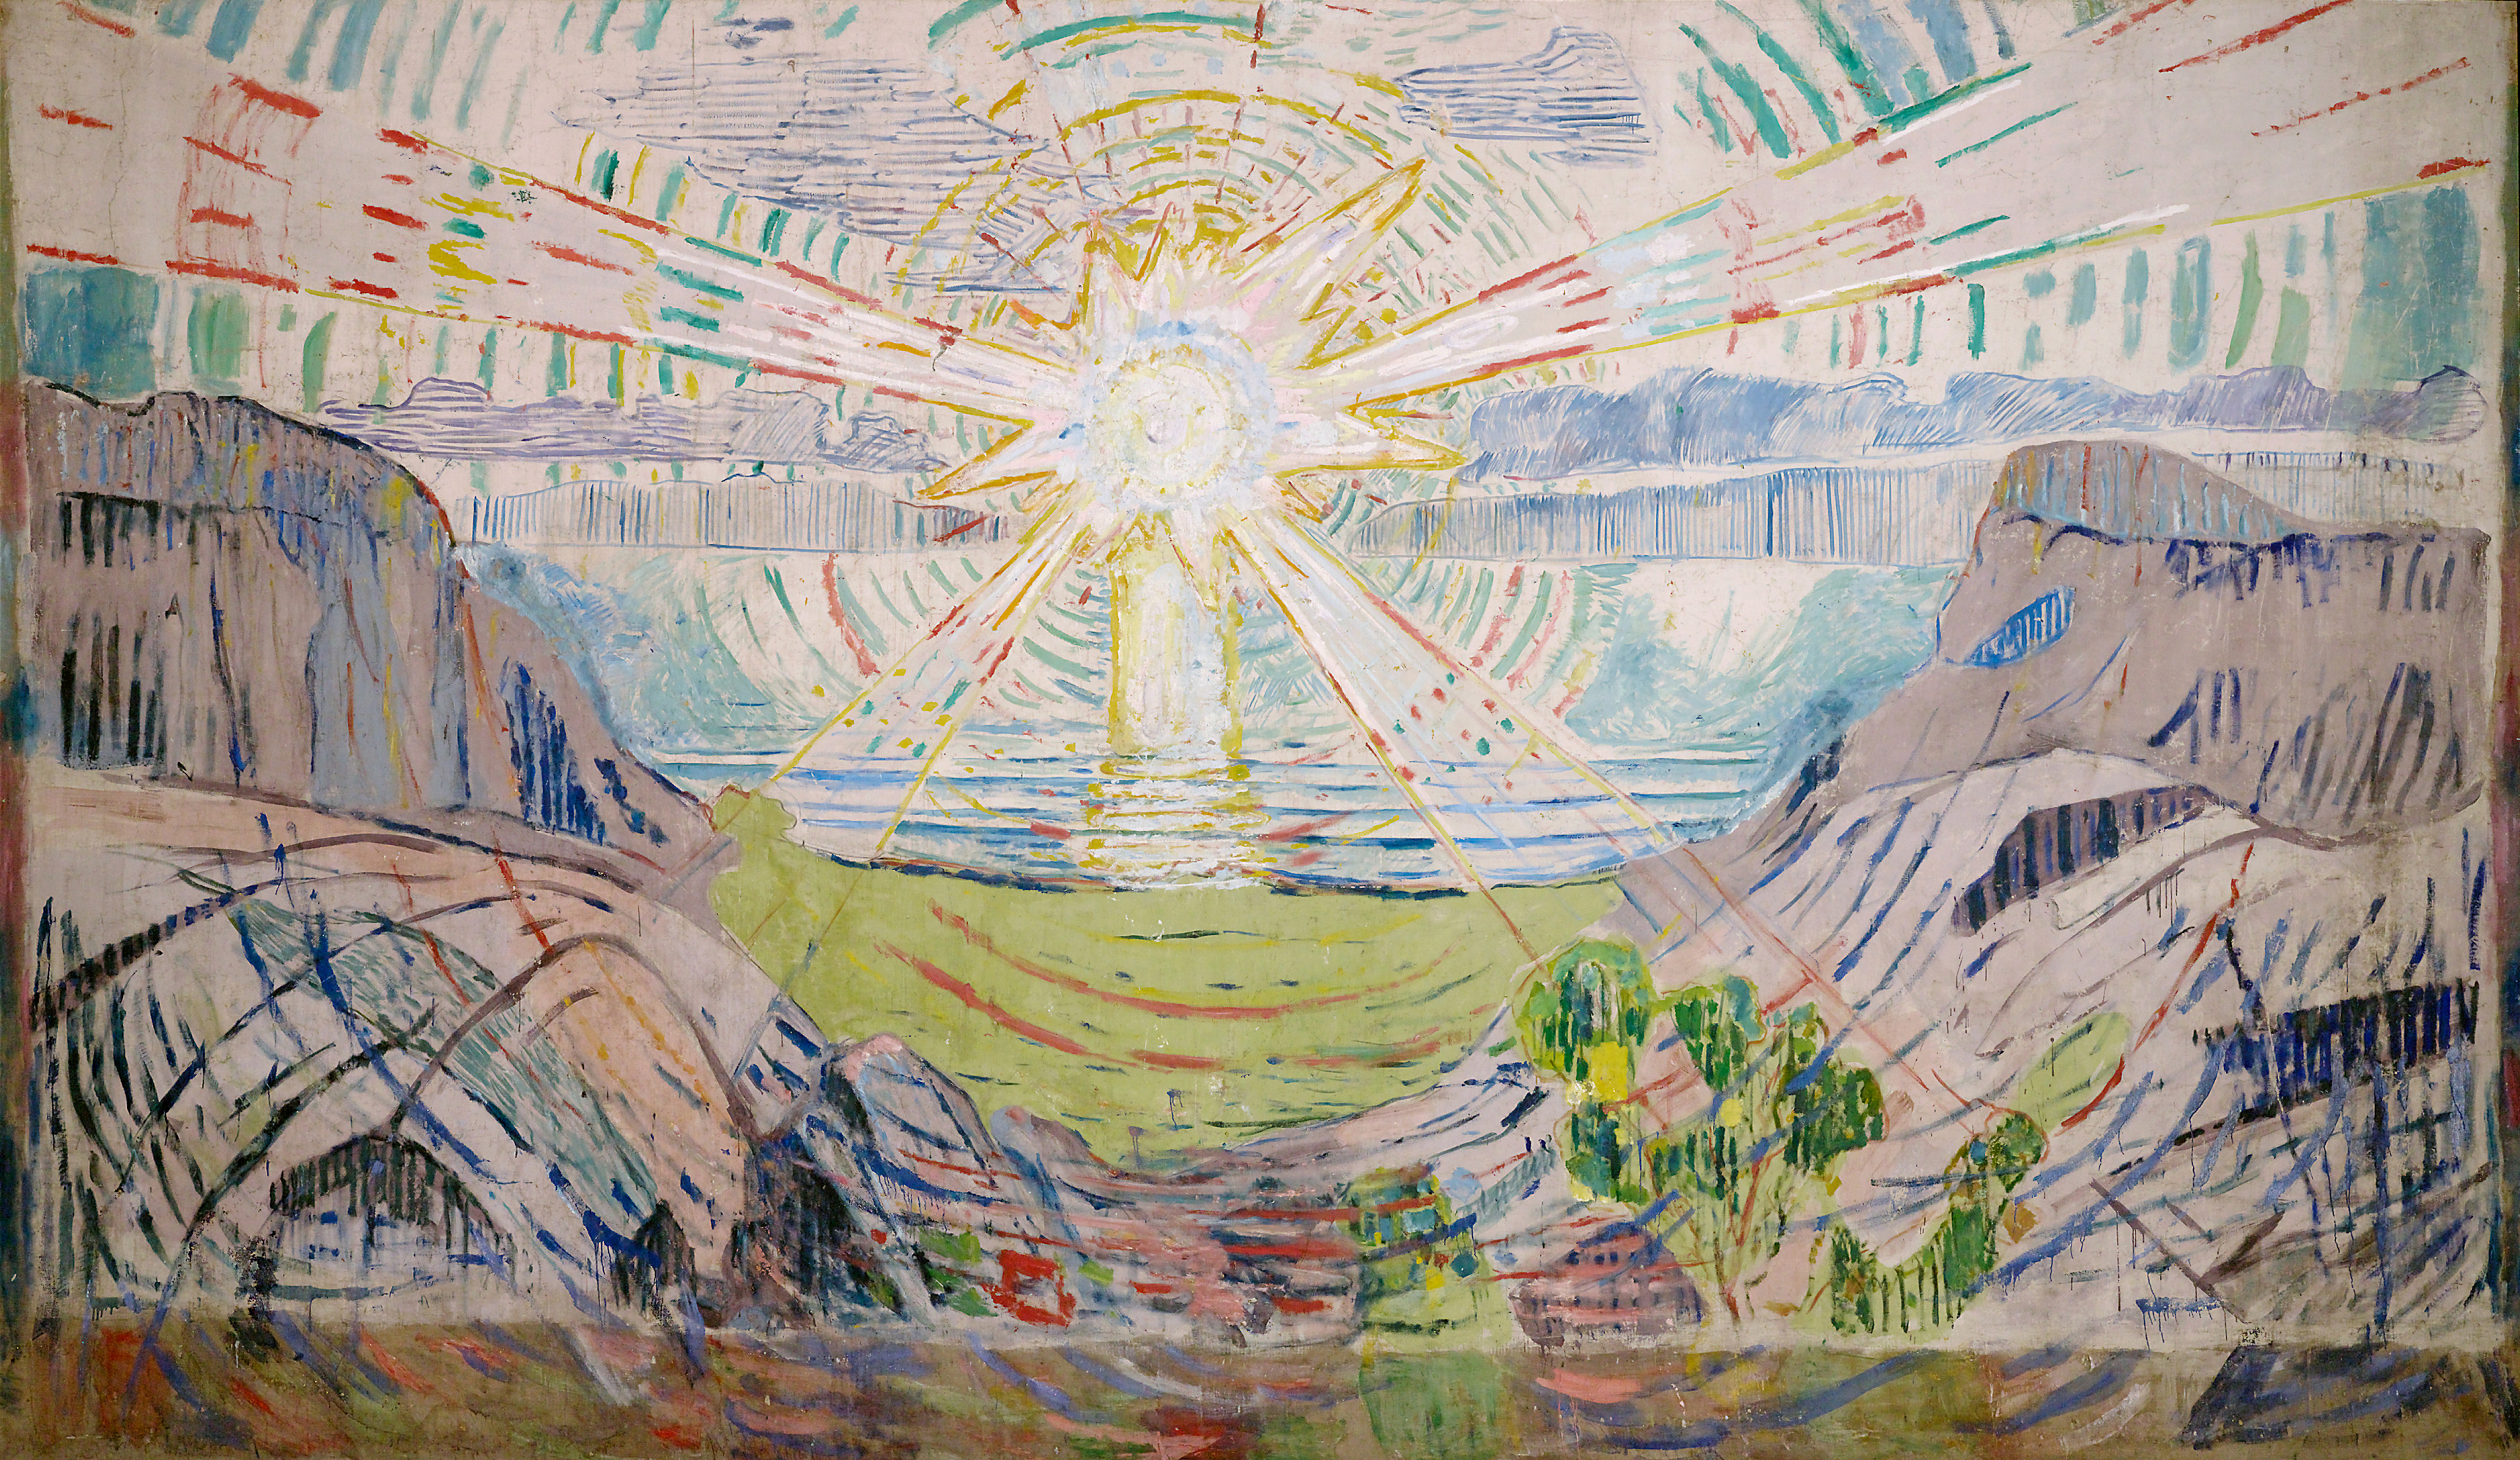 Edvard Munch: The Sun. Oil on canvas, 1910-1911. Photo  © Munchmuseet.